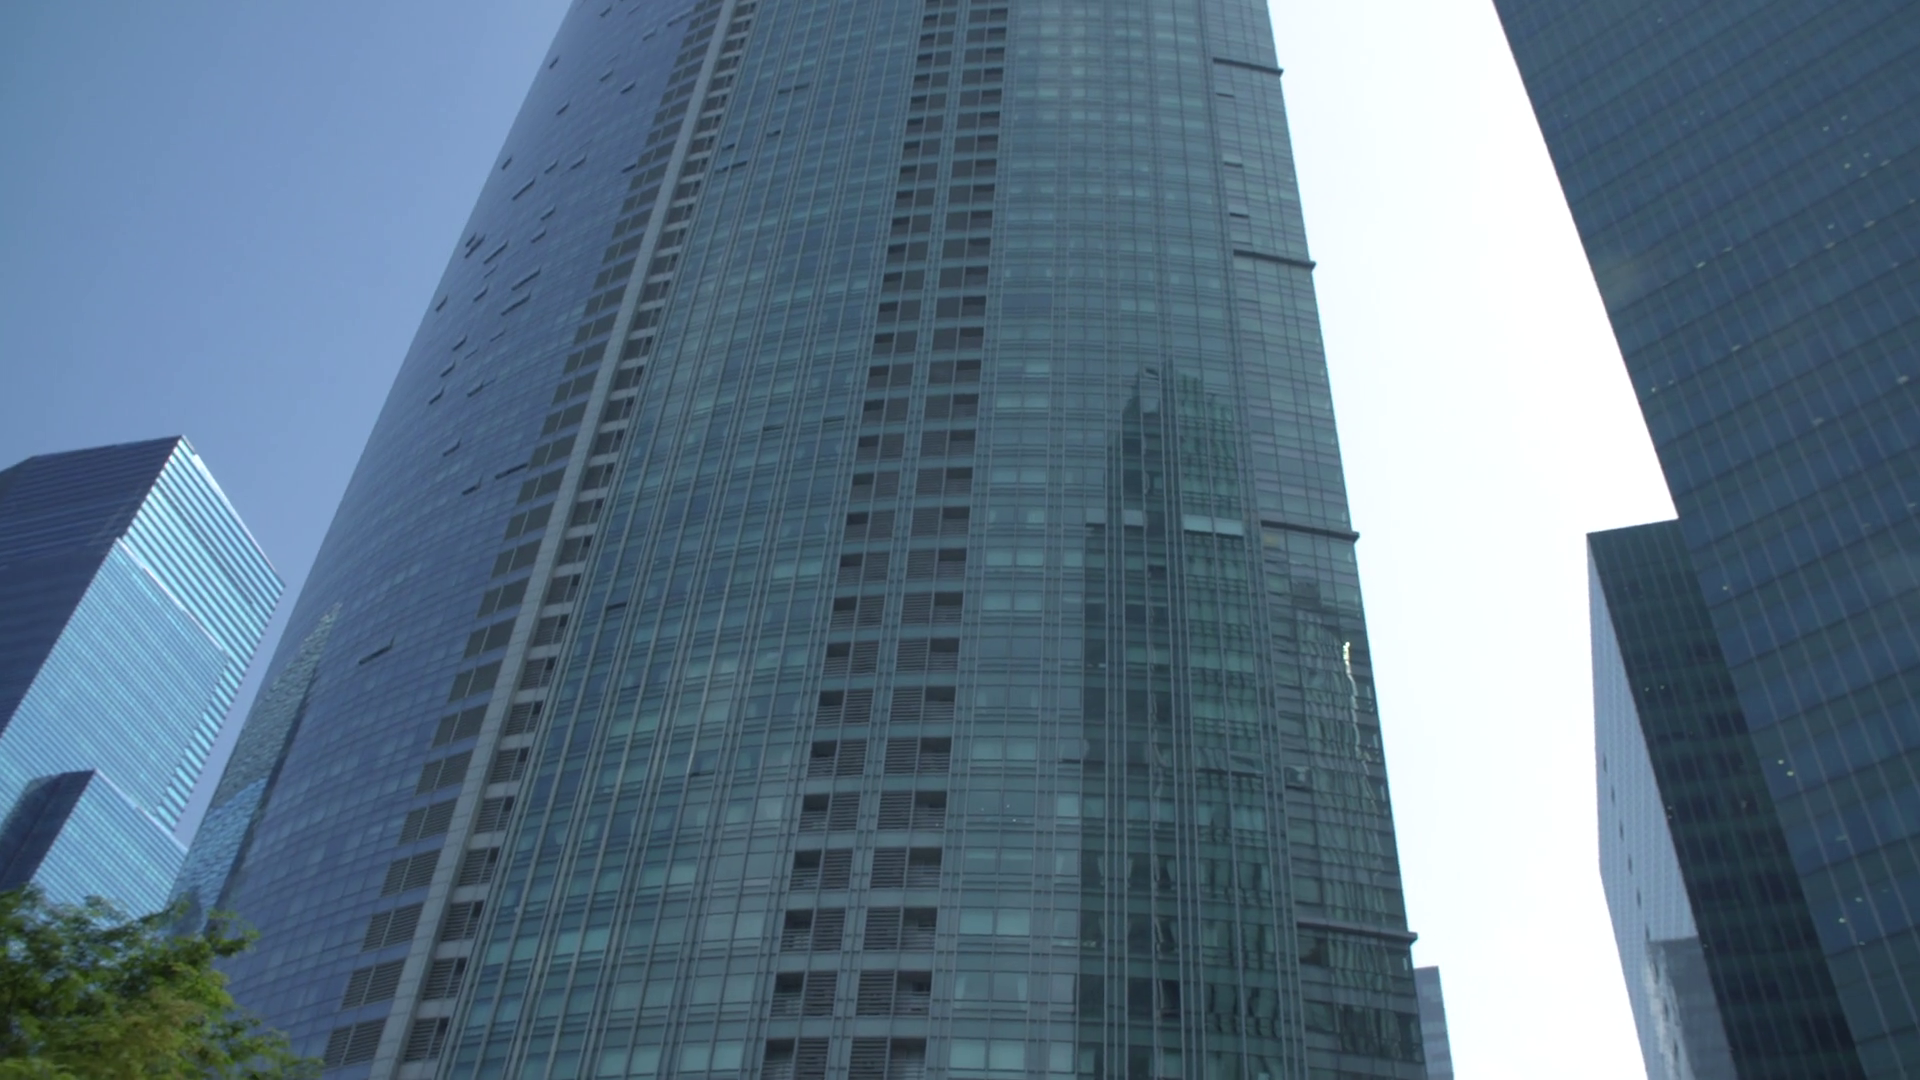 Free photo: Close-up of Skyscraper - Architecture, Modern, Travel ...